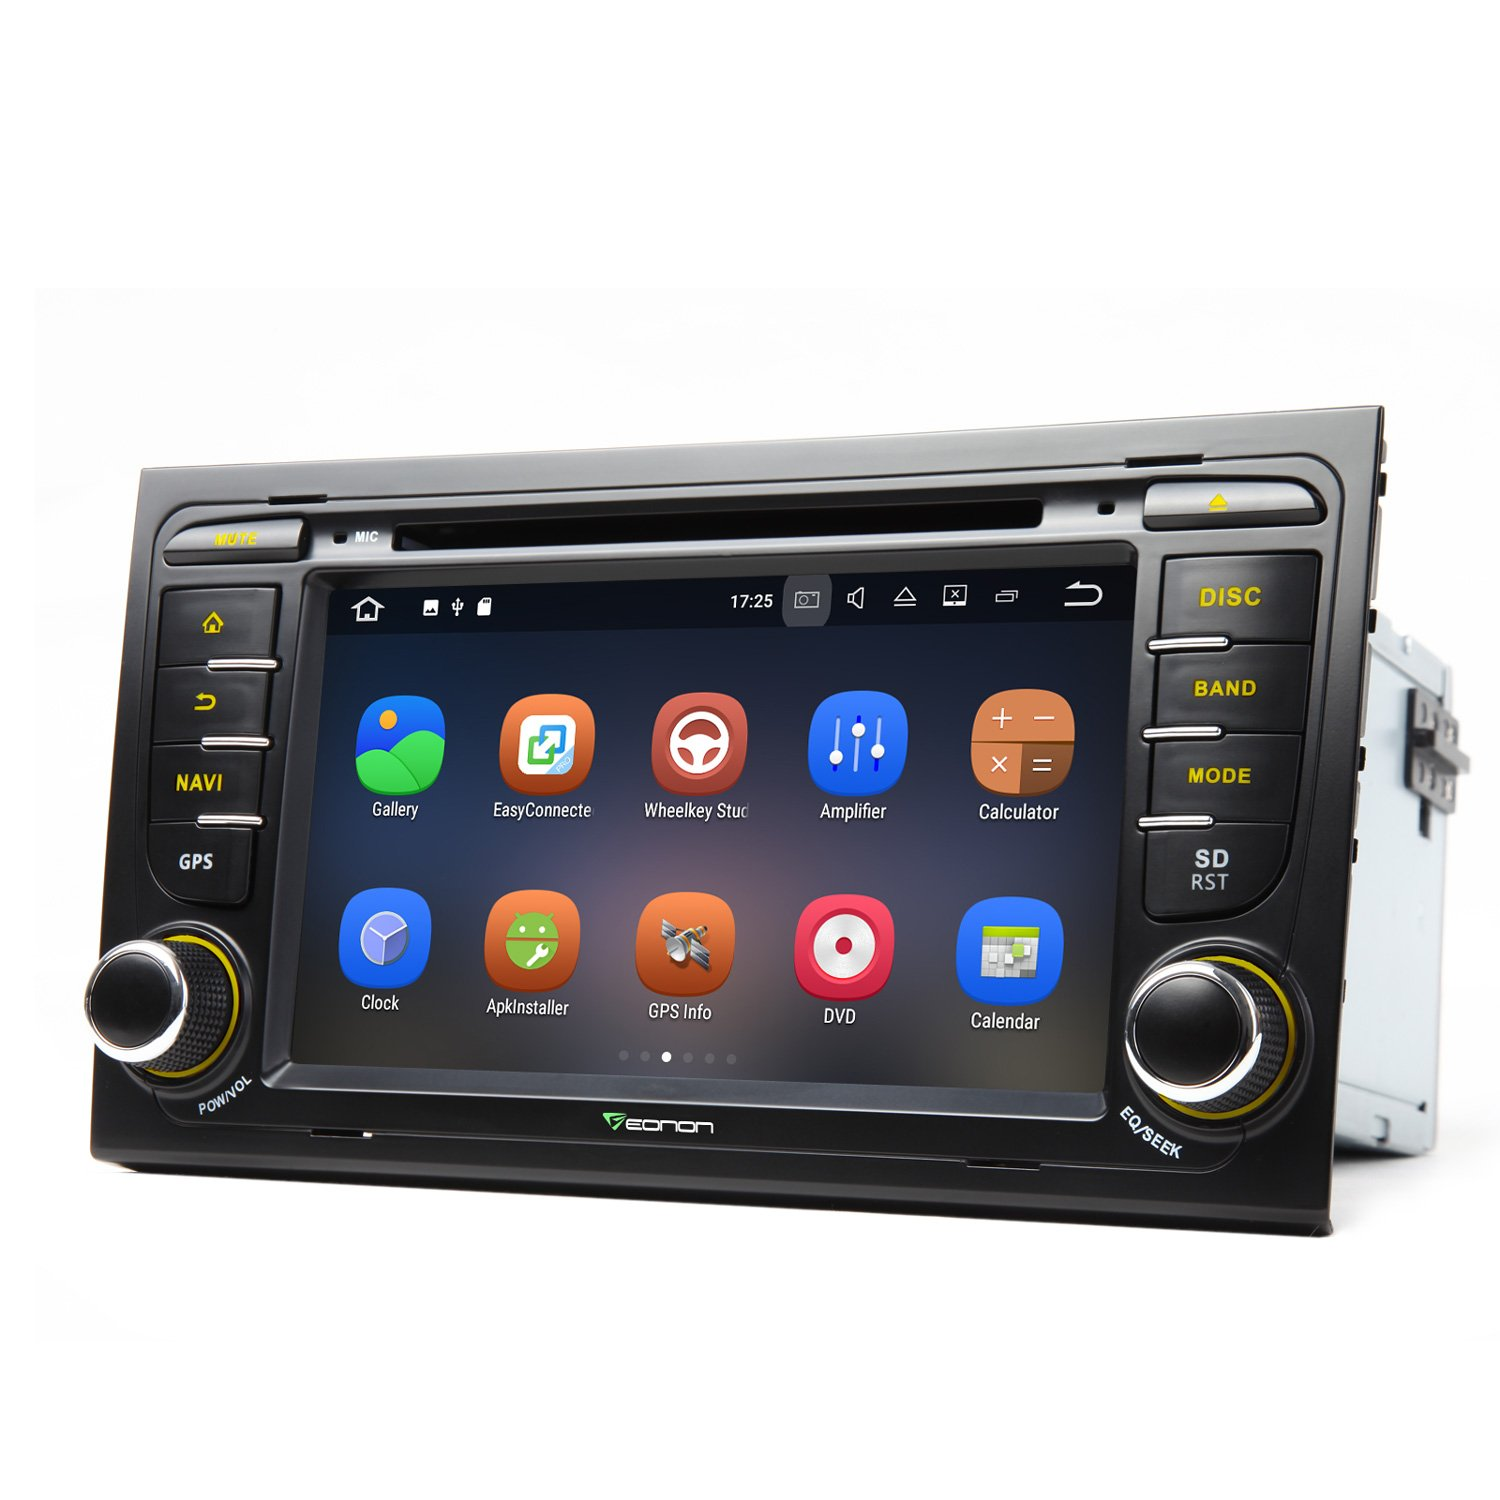 Eonon GA8158 Car Audio Stereo Radio  for Audi A4/S4/RS4 and Seat Exeo Android 7.1 2GB RAM Quad- Core 7 Inch HD Digital Touch Screen Car GPS Navigation Supports Bluetooth Wifi MirrorLink AUX USB